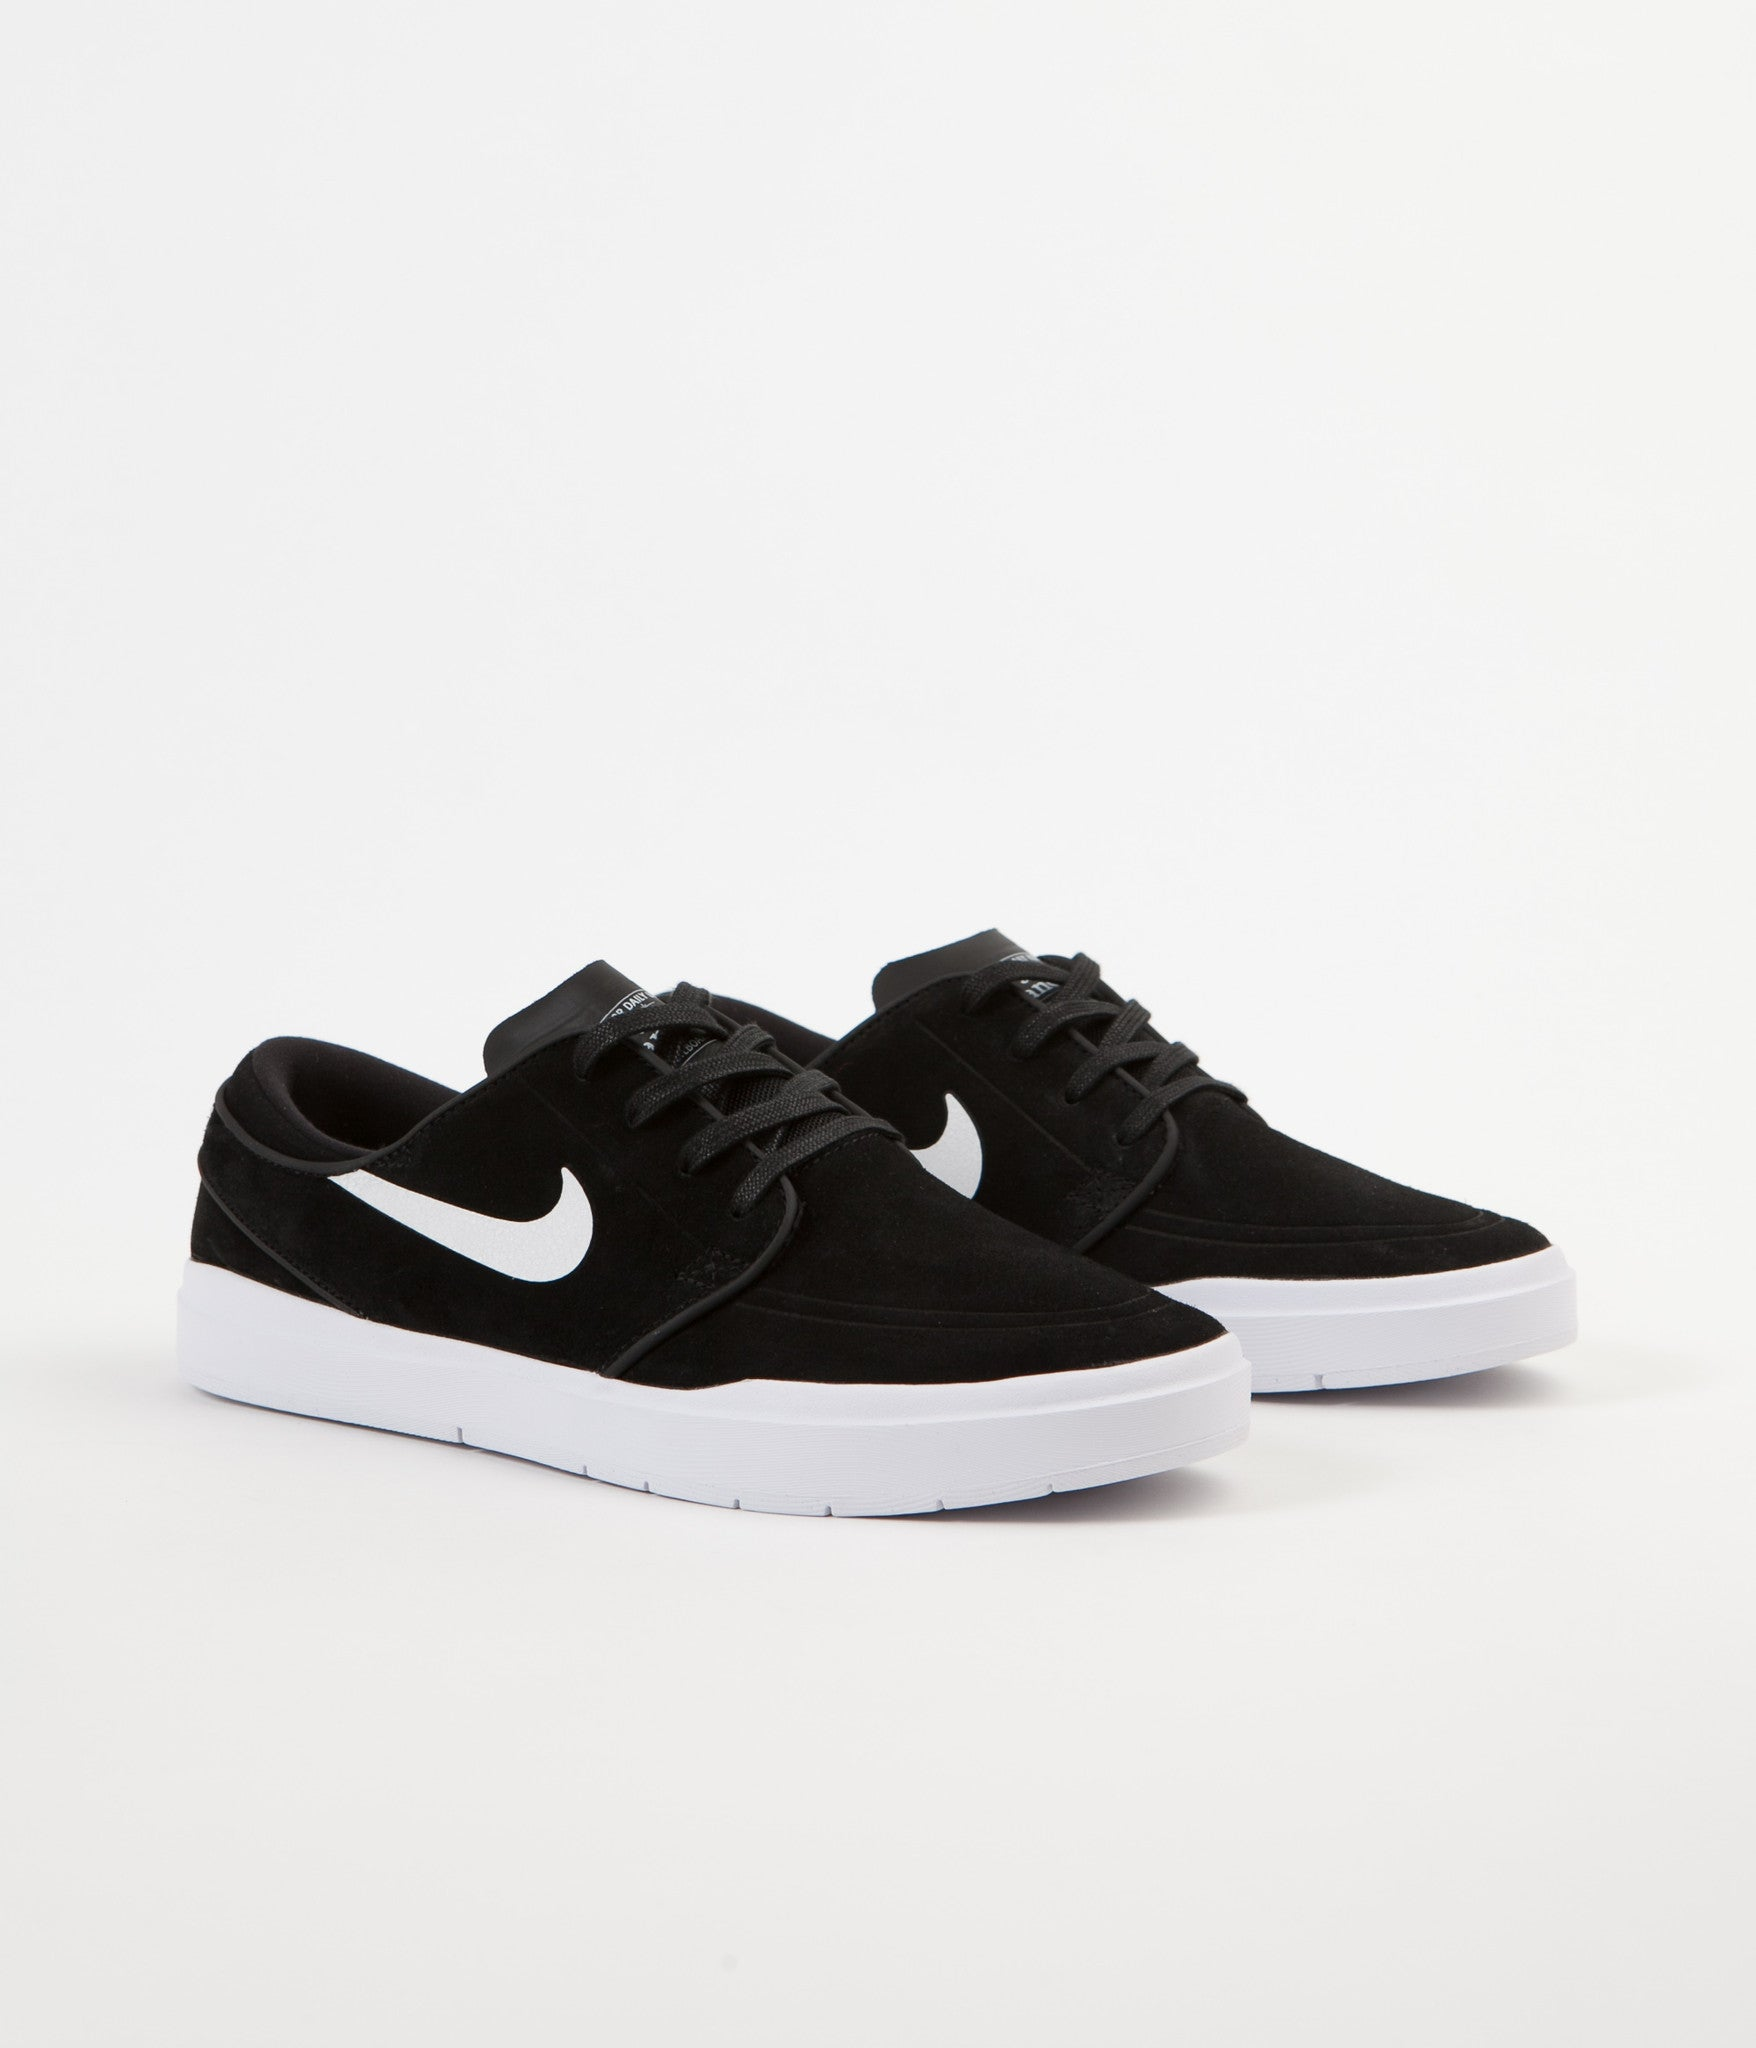 Nike SB Stefan Janoski Hyperfeel Shoes - Black / White